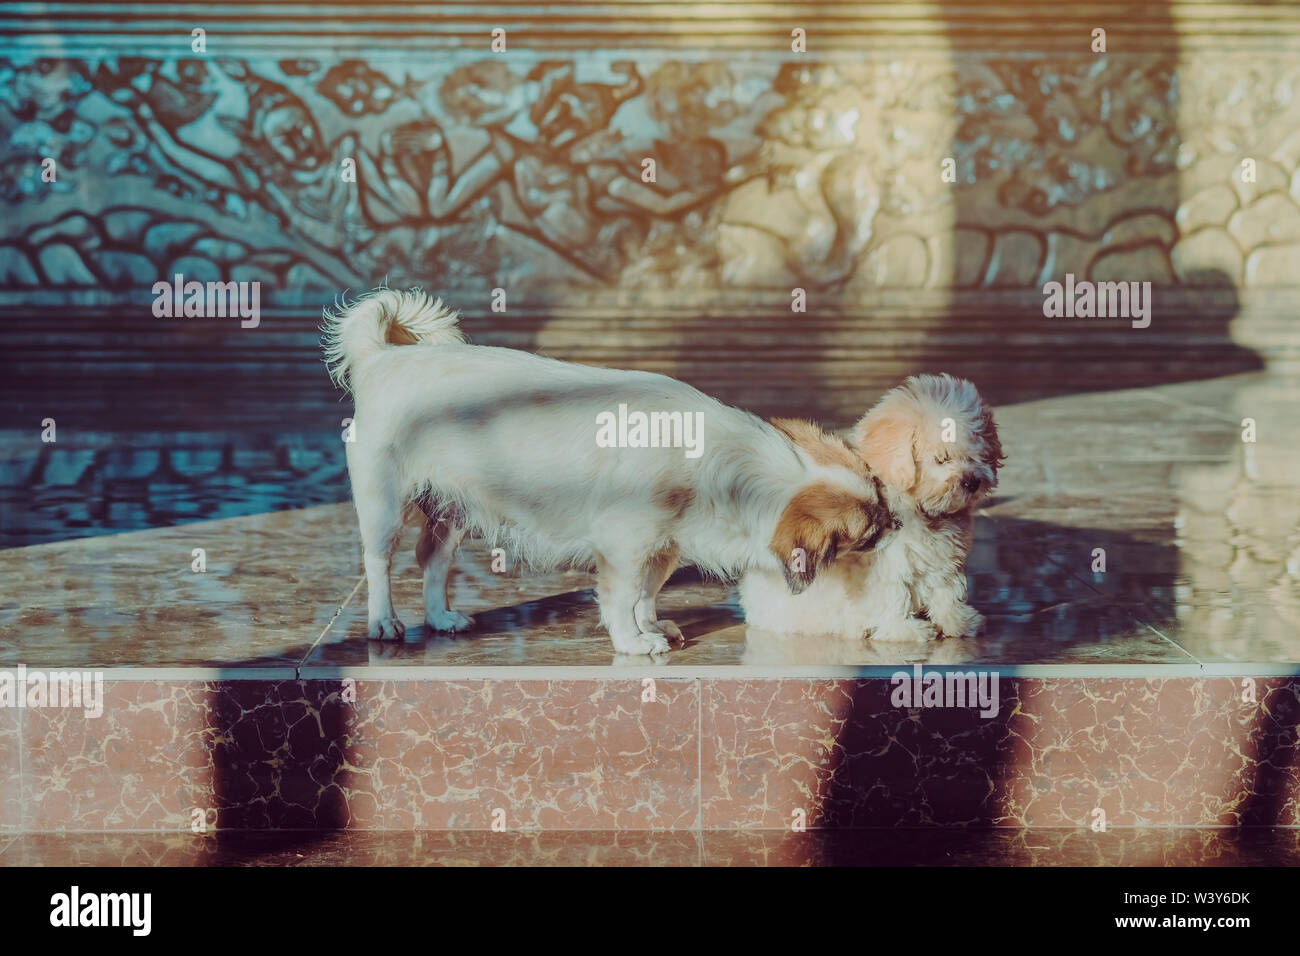 Little cute dogs wait to welcome guests in front of the hotel in the morning. - Stock Image